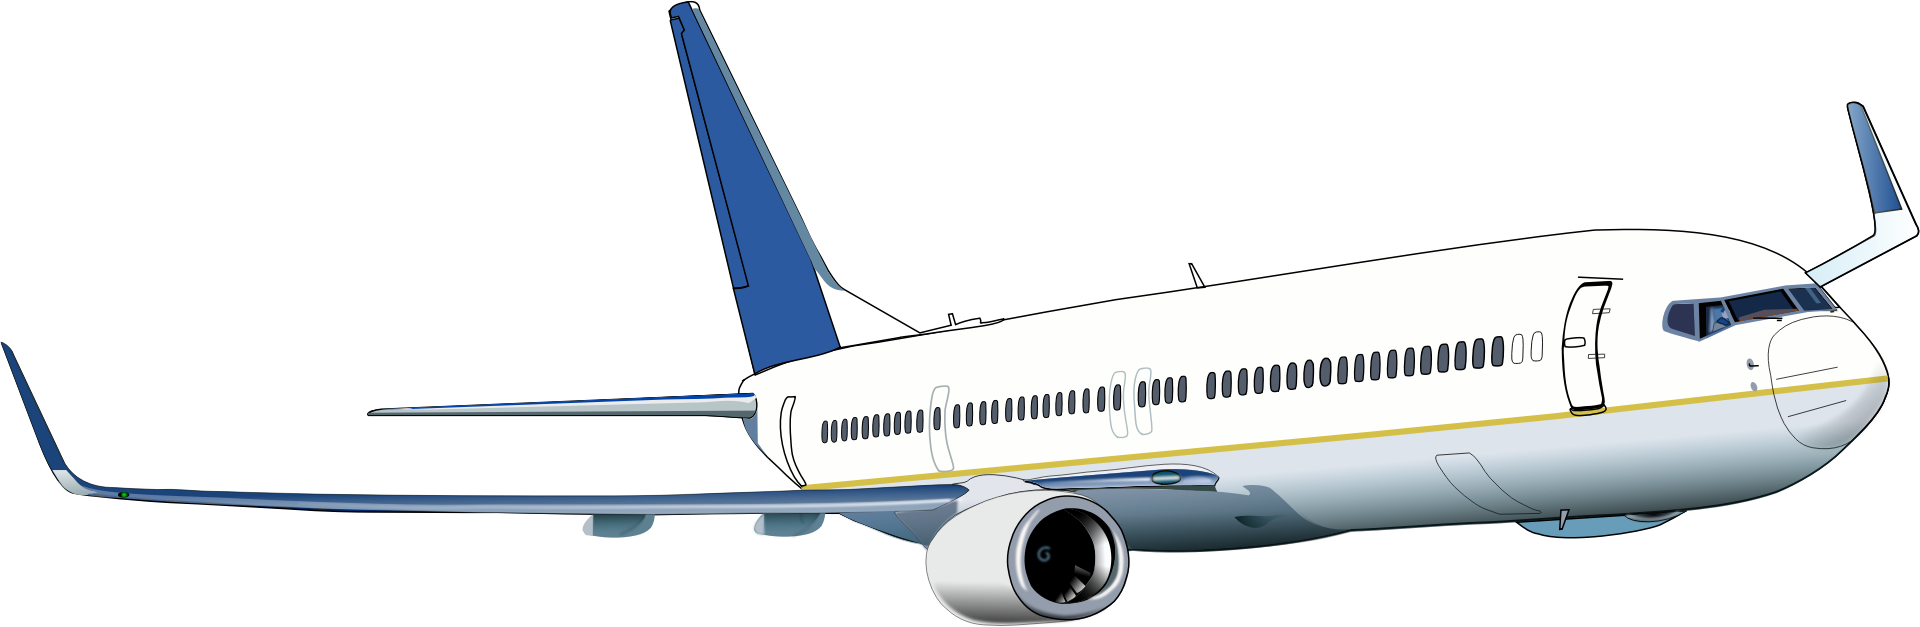 jpg library download Boeing transparent background png. Vector aviation perth